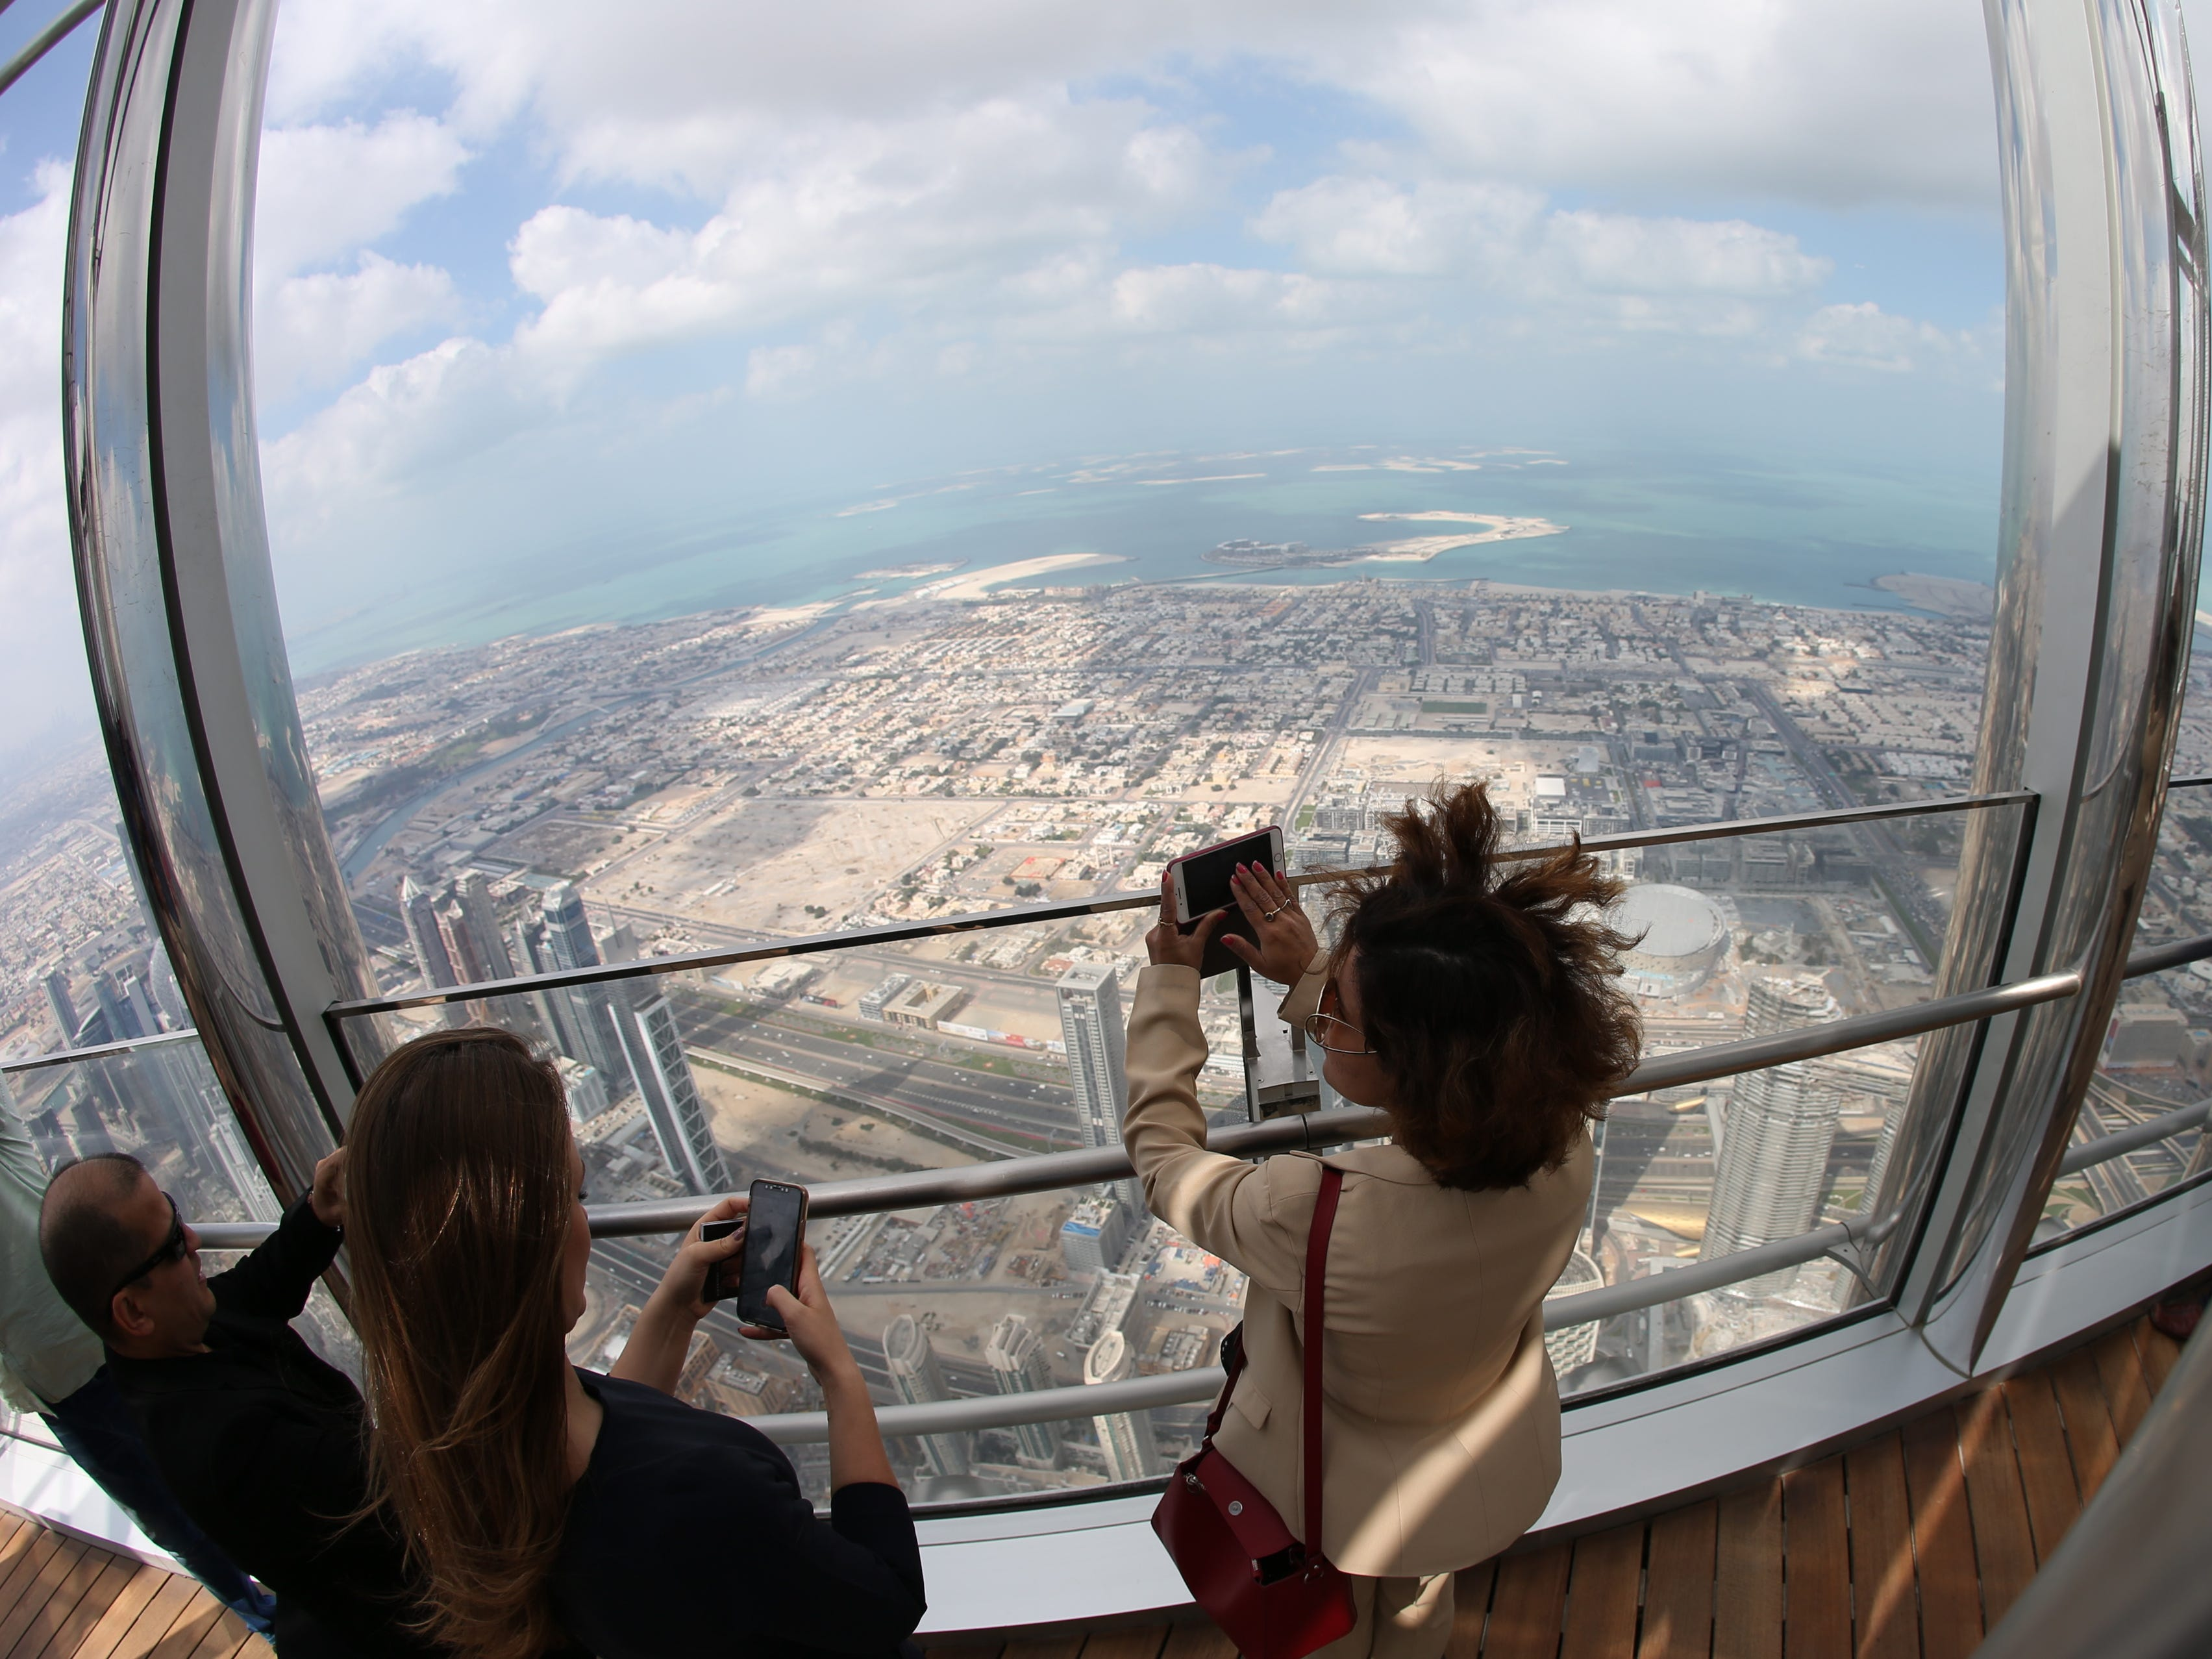 epa07366412 A picture taken with a fish eye lens shows people inspecting the new highest lounge in the world at Burj Khalifa in Dubai, United Arab Emirates, 13 February 2019. Ahmad Al Falasi, Executive Director Emaar Properties announced during media briefing the opening of highest lounge in the world at Burj Khalifa which is located at 152, 153 and 154 floor which have distinctive settings each assuring never before seen views of the city.  EPA-EFE/ALI HAIDER ORG XMIT: XAH001